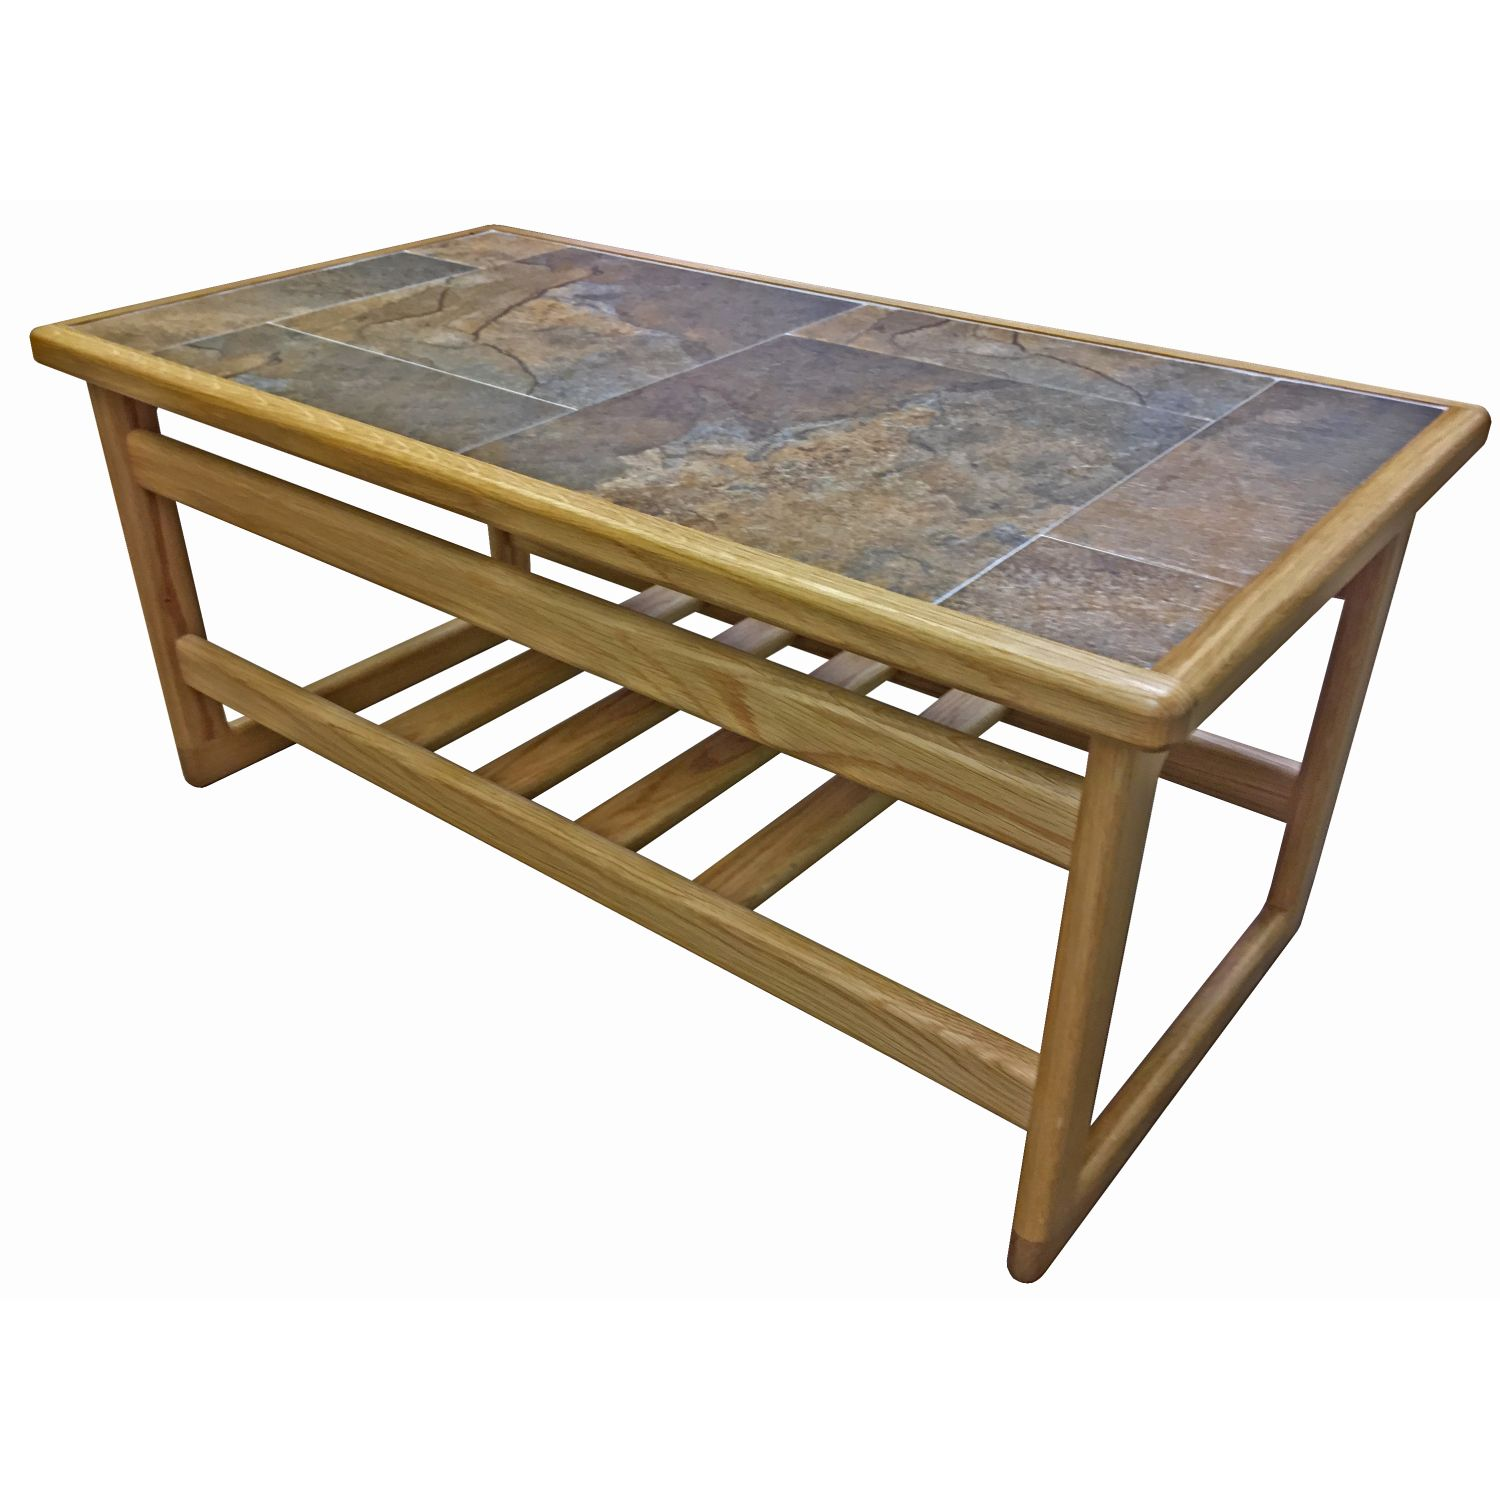 Image of Casa Autumn Tile Top Coffee Table